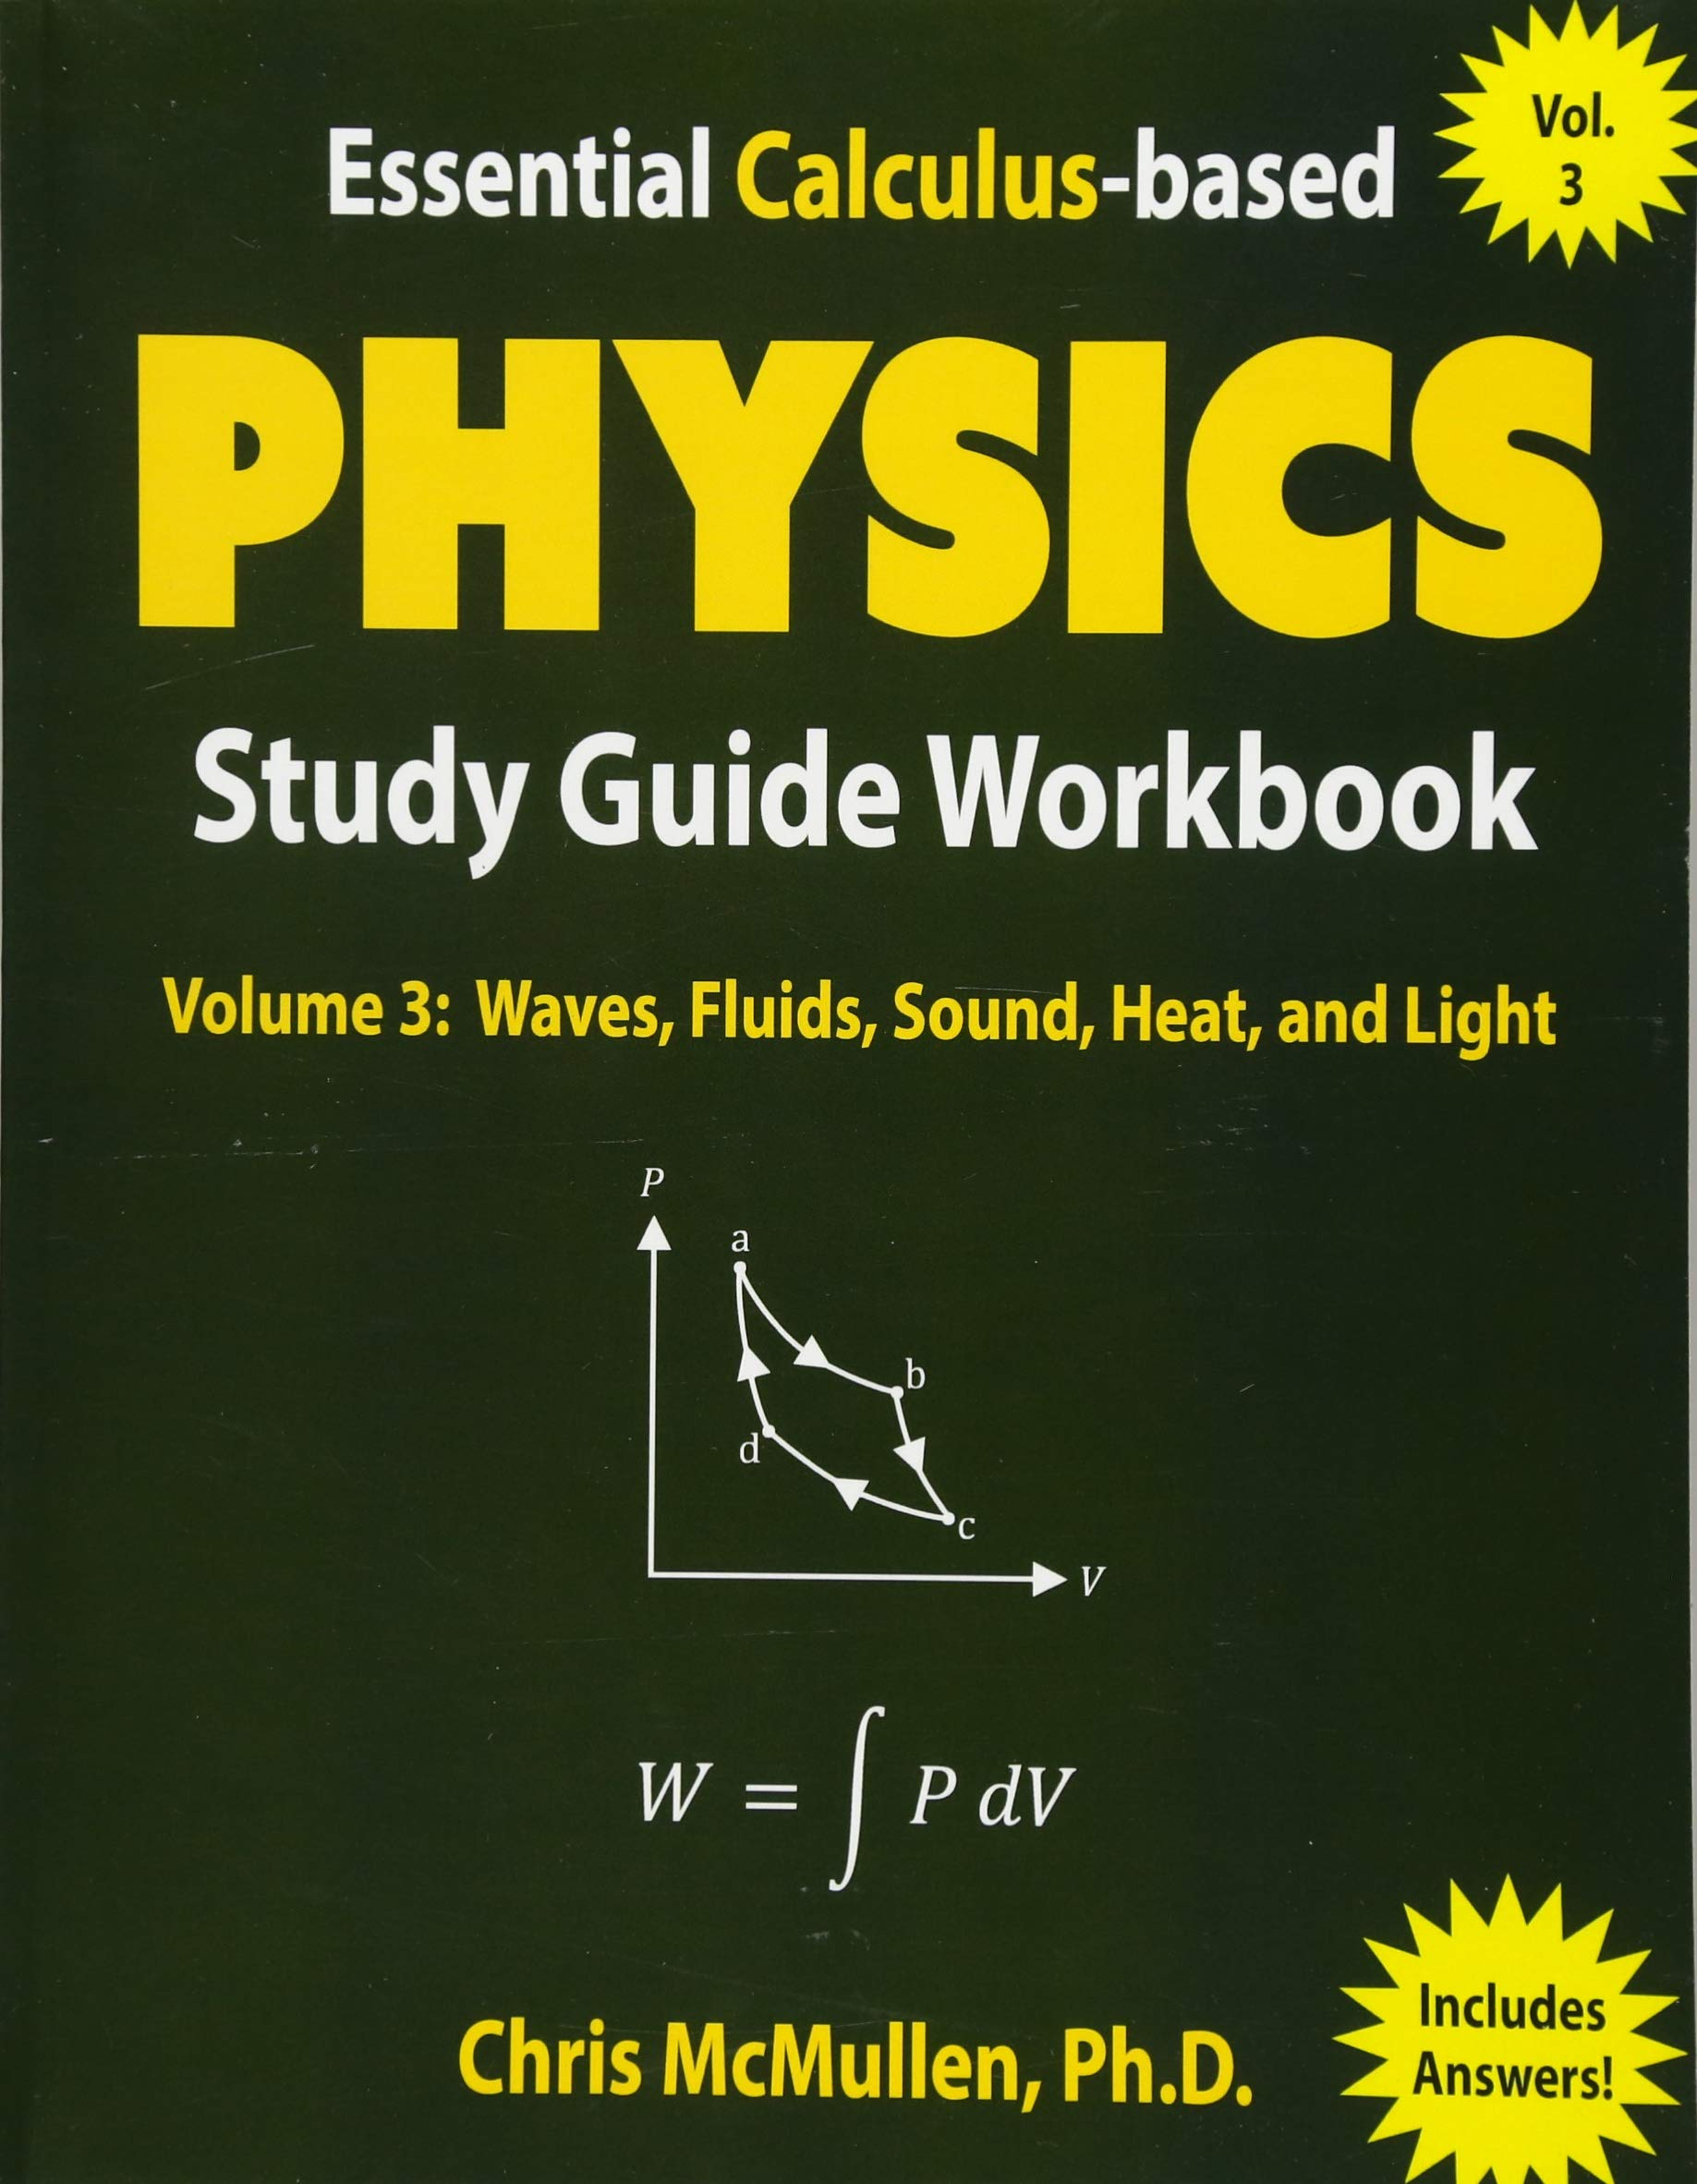 Essential Calculus-based Physics Study Guide Workbook: Waves, Fluids,  Sound, Heat, and Light (Learn Physics with Calculus Step-by-Step) (Volume  3): Chris ...